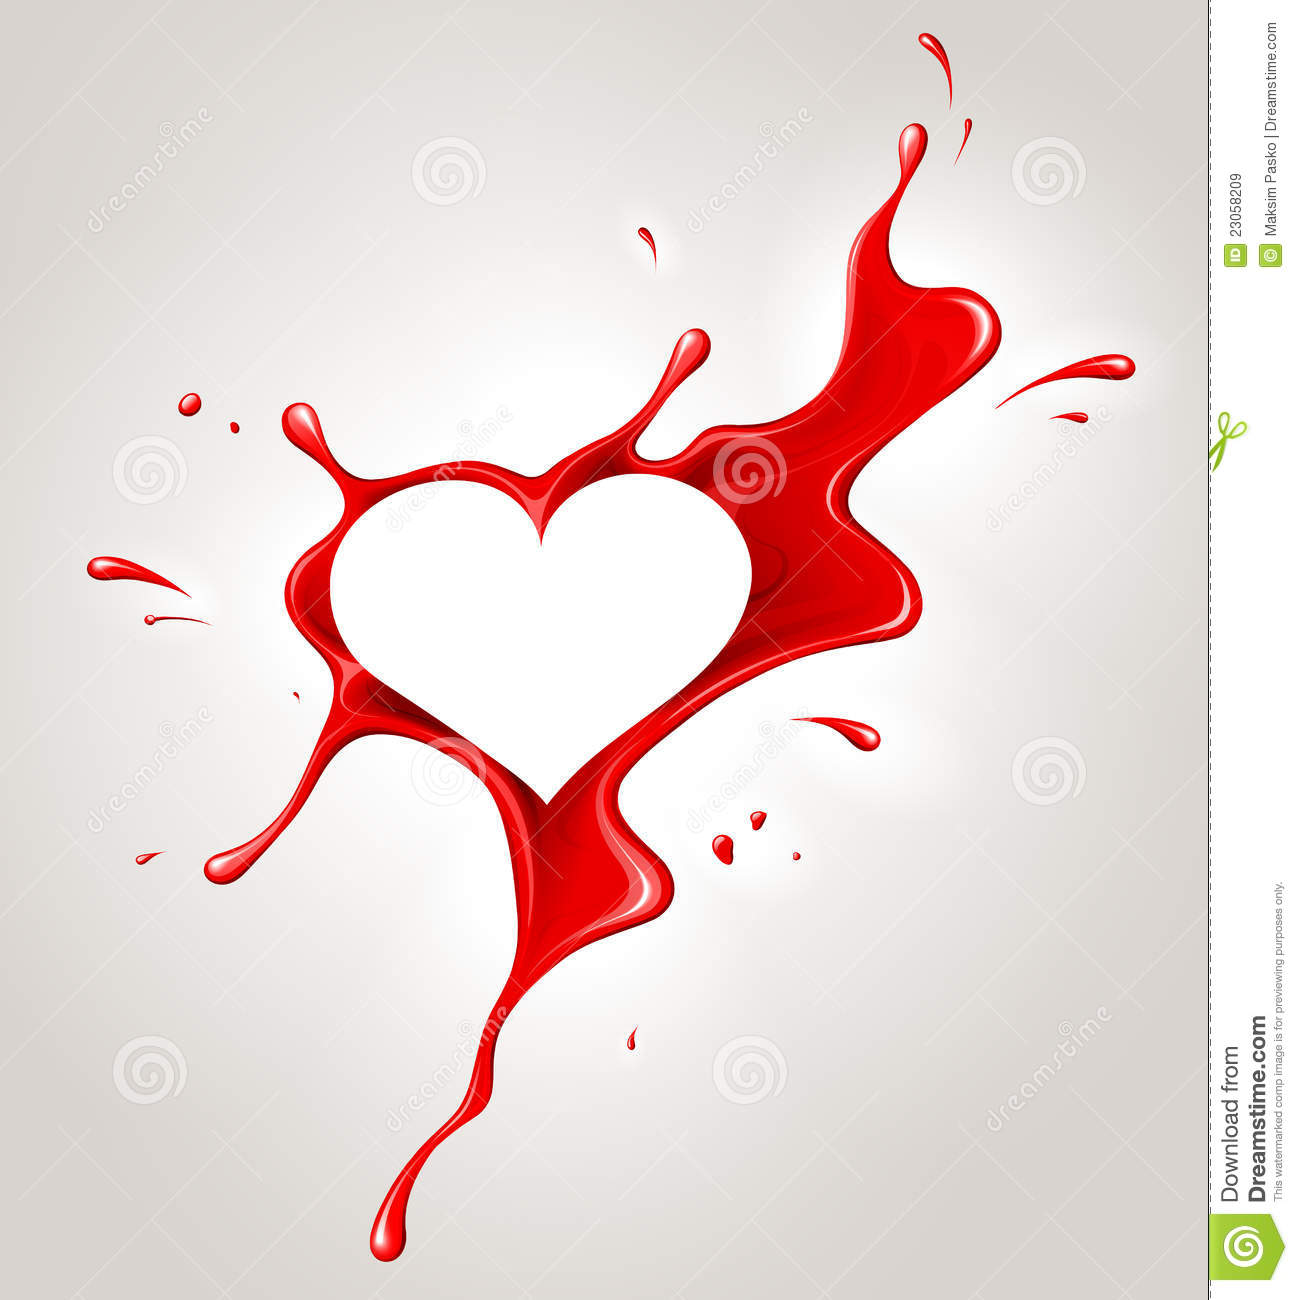 Red spray paint and heart royalty free stock images for Happy color spray paint price